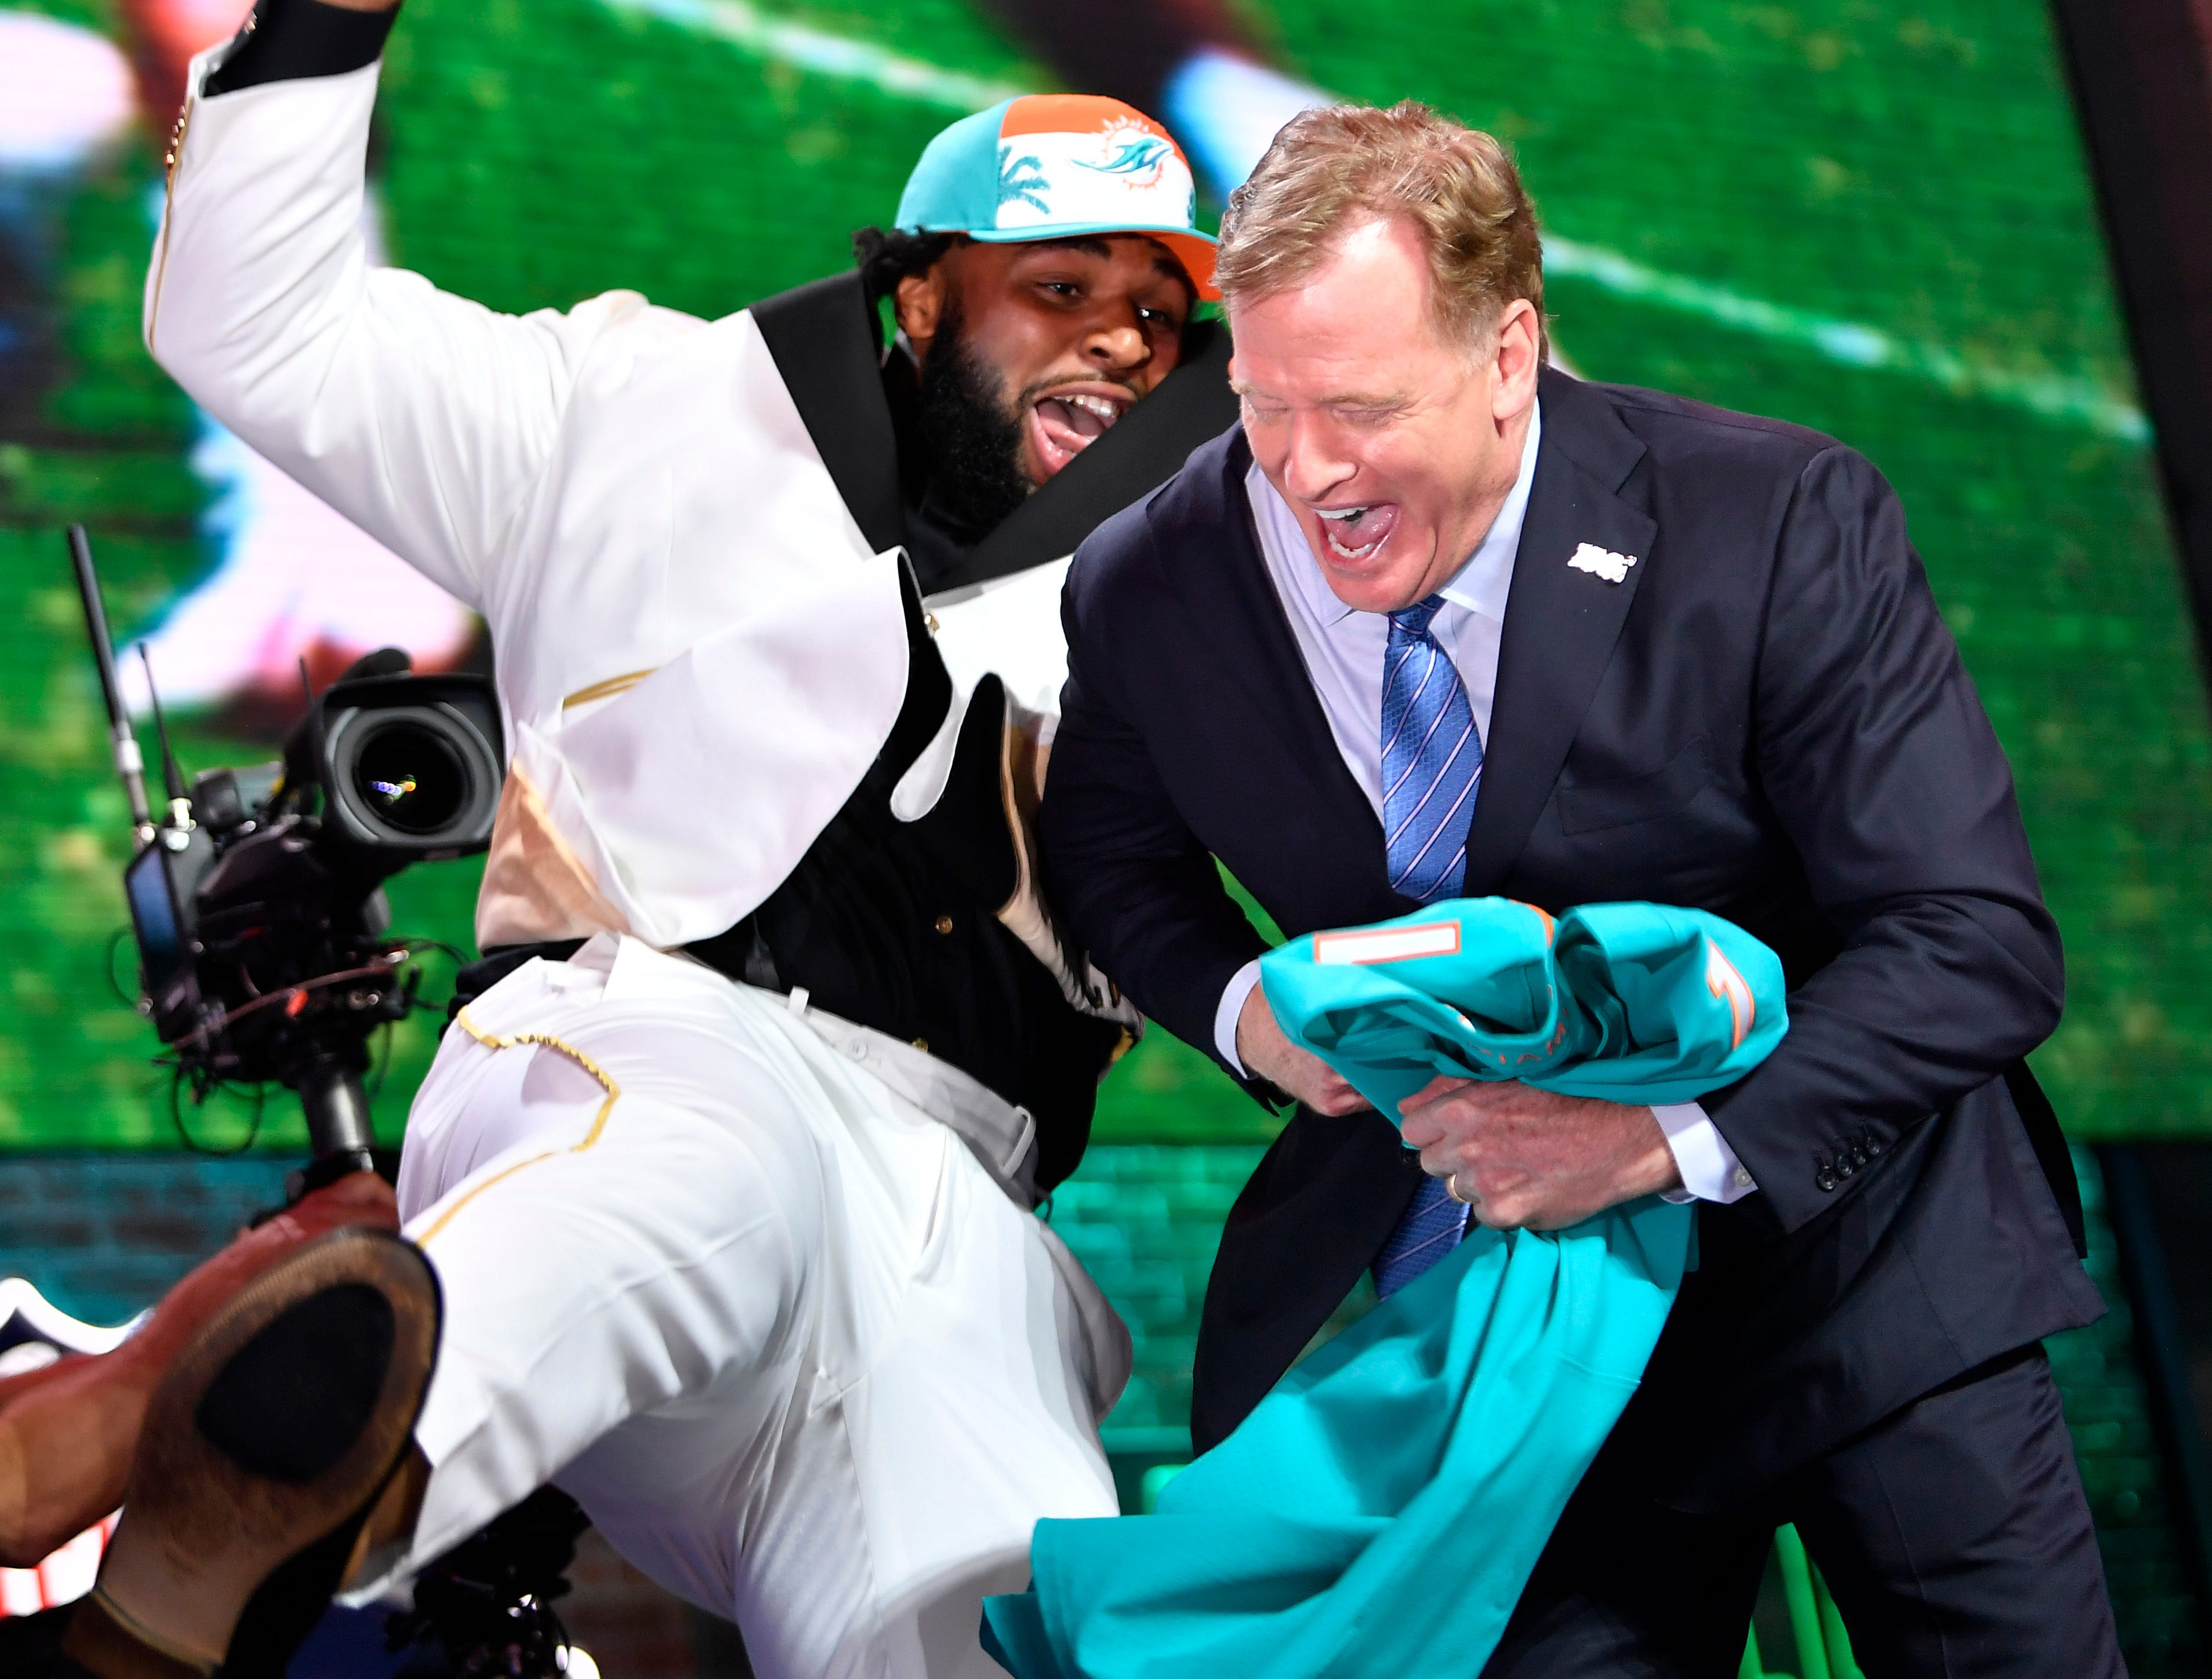 Christian Wilkins celebrates his pick by the Miami Dolphins with NFL Commissioner Roger Goodell during the first round of the NFL Draft Thursday, April 25, 2019, in Nashville, Tenn.